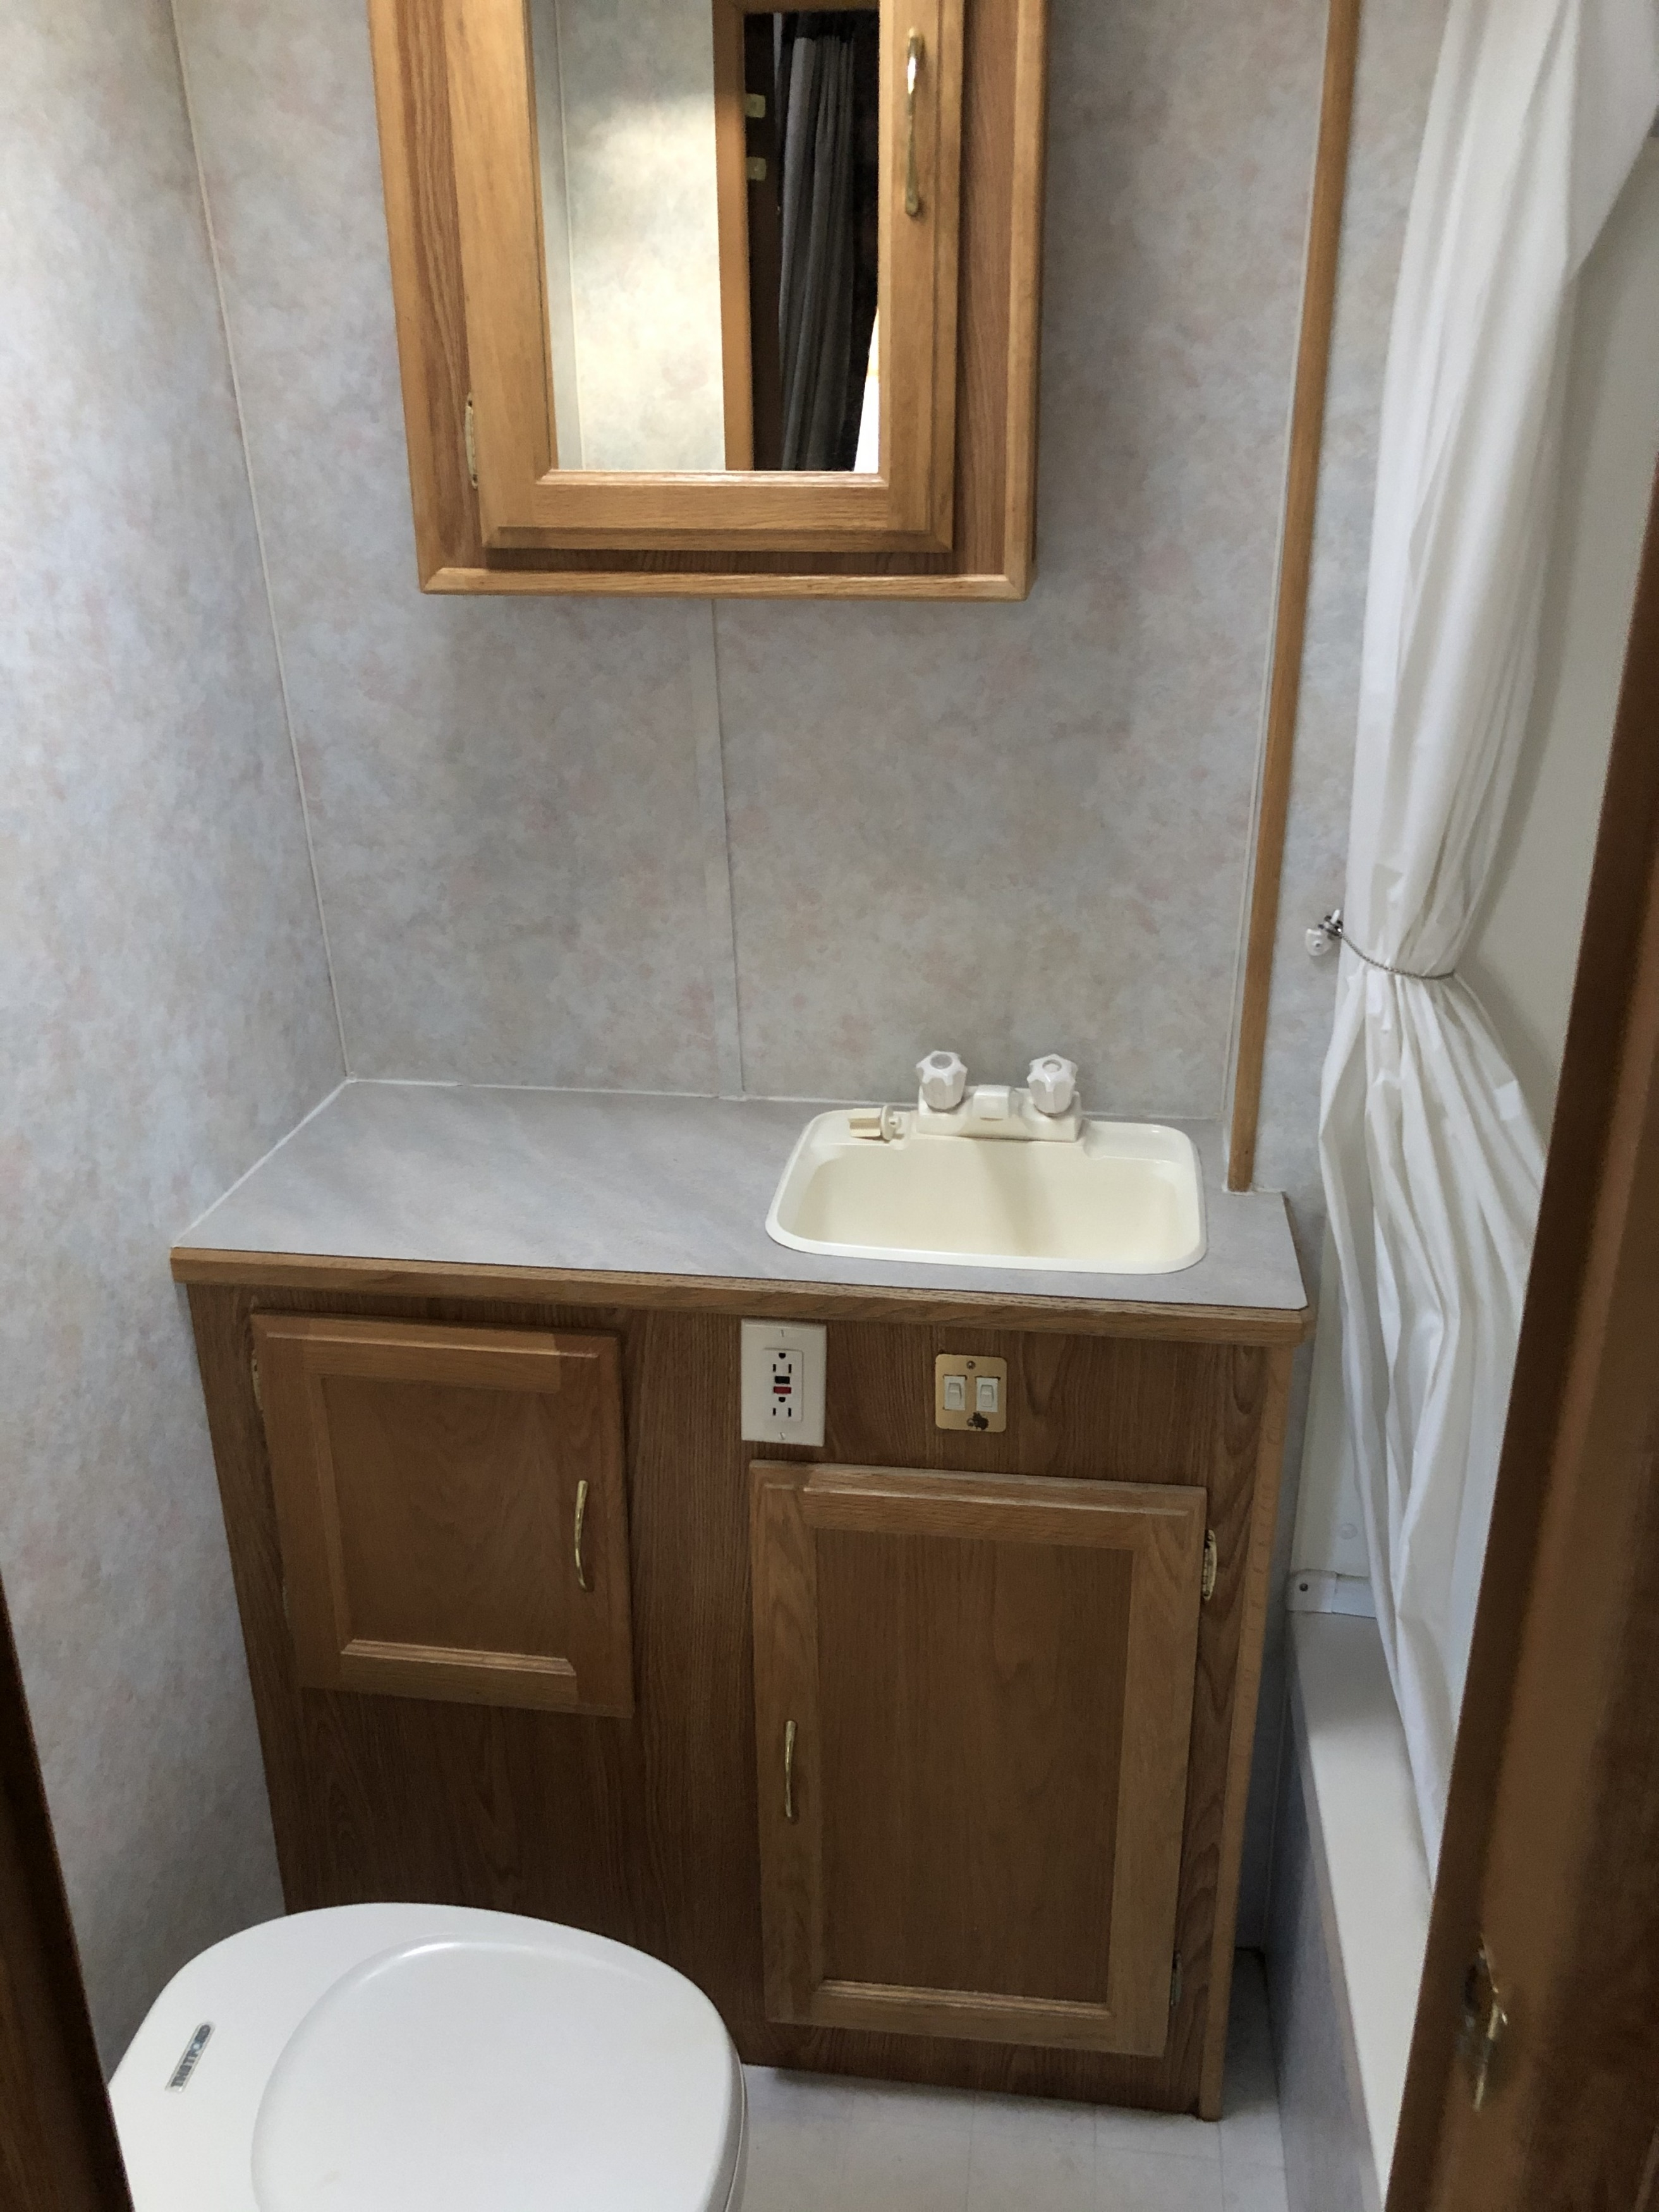 25' Frontier 5th Wheel Bathroom interior view